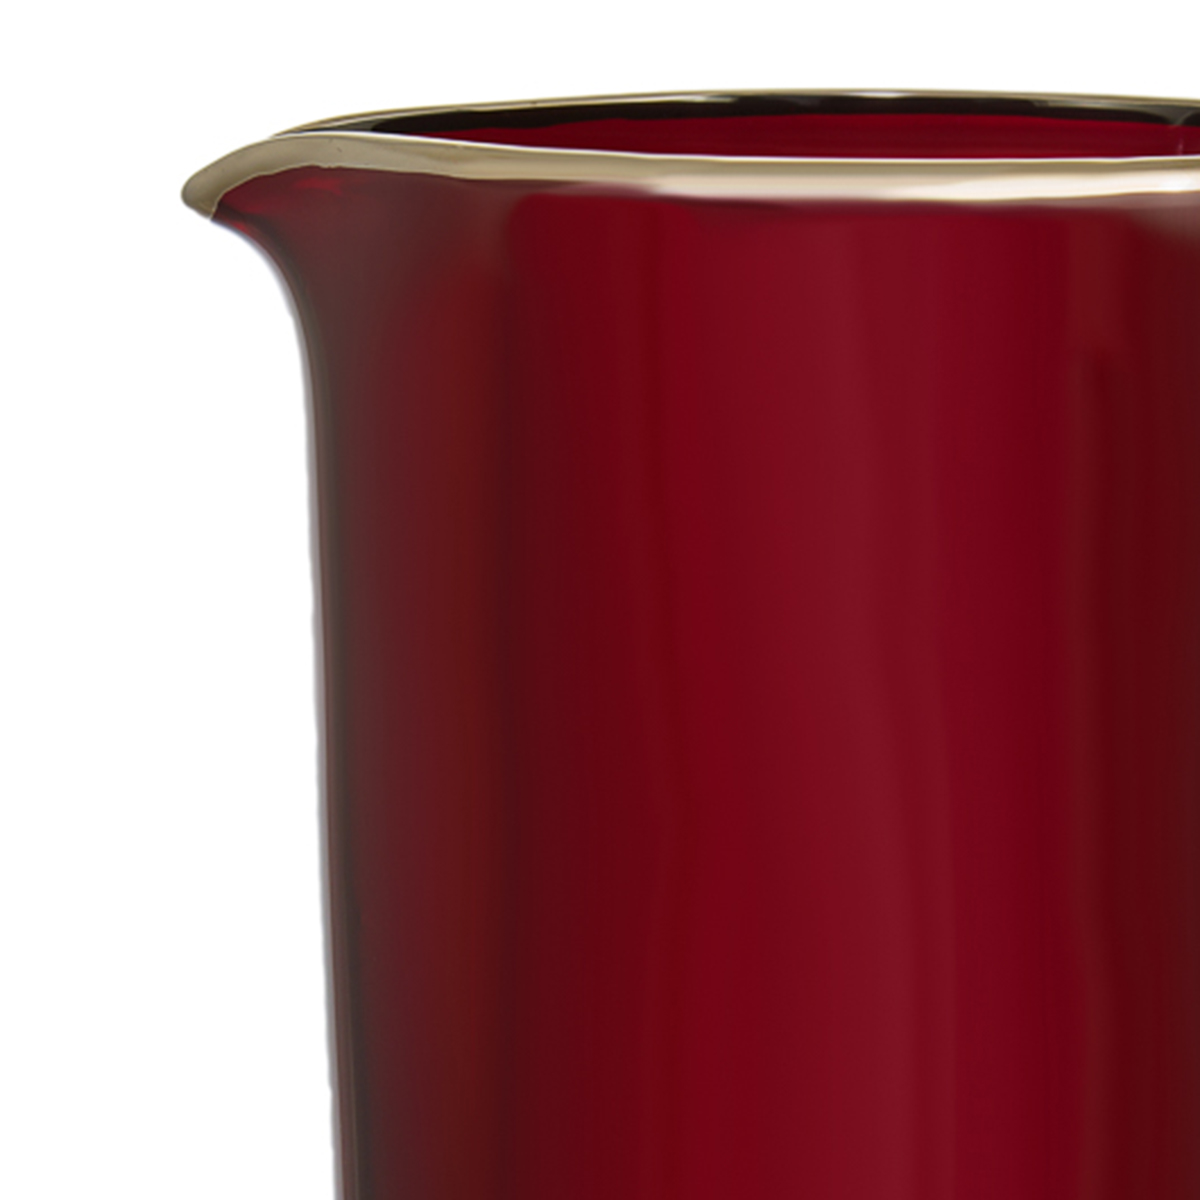 jug_viola_red_platinum_lux_luxury_italian_italy_detail